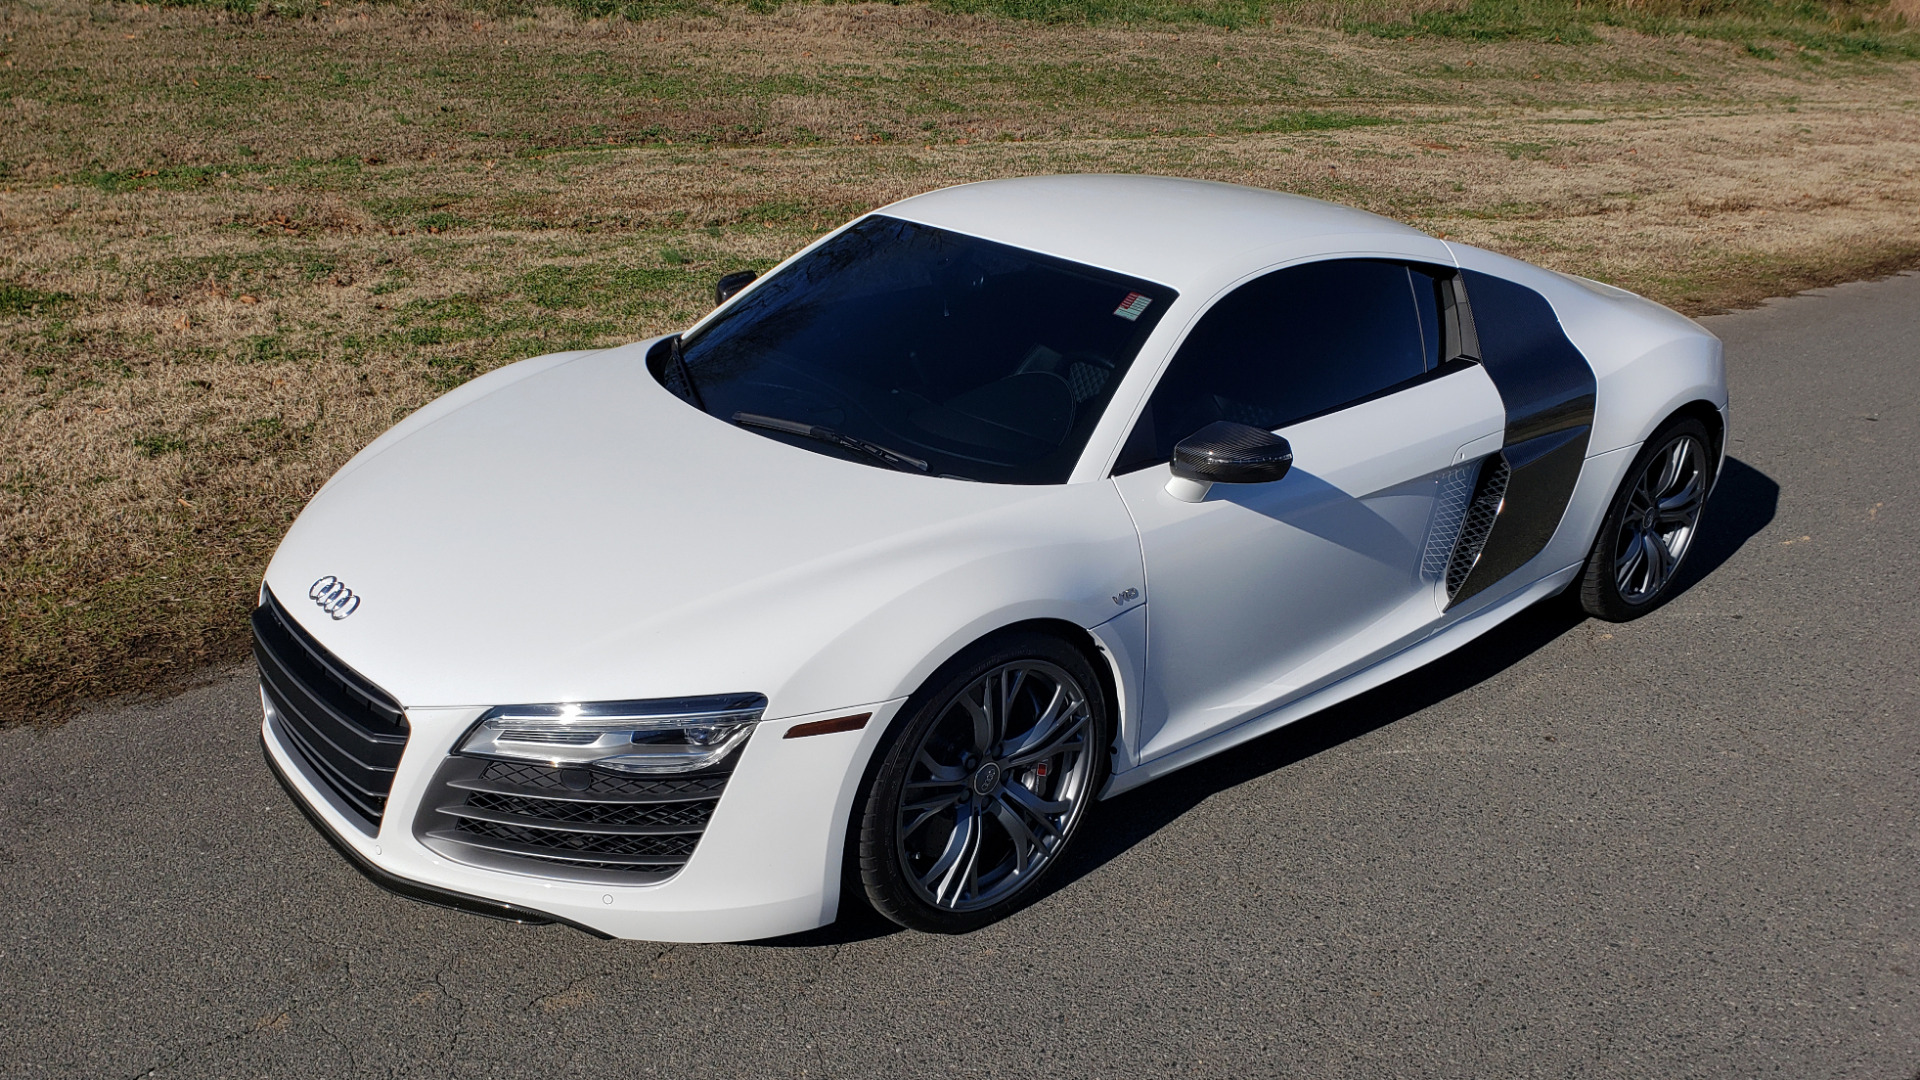 Used 2015 Audi R8 V10 PLUS / S-TRONIC / B&O SOUND / SPORT EXH / REARVIEW for sale Sold at Formula Imports in Charlotte NC 28227 2